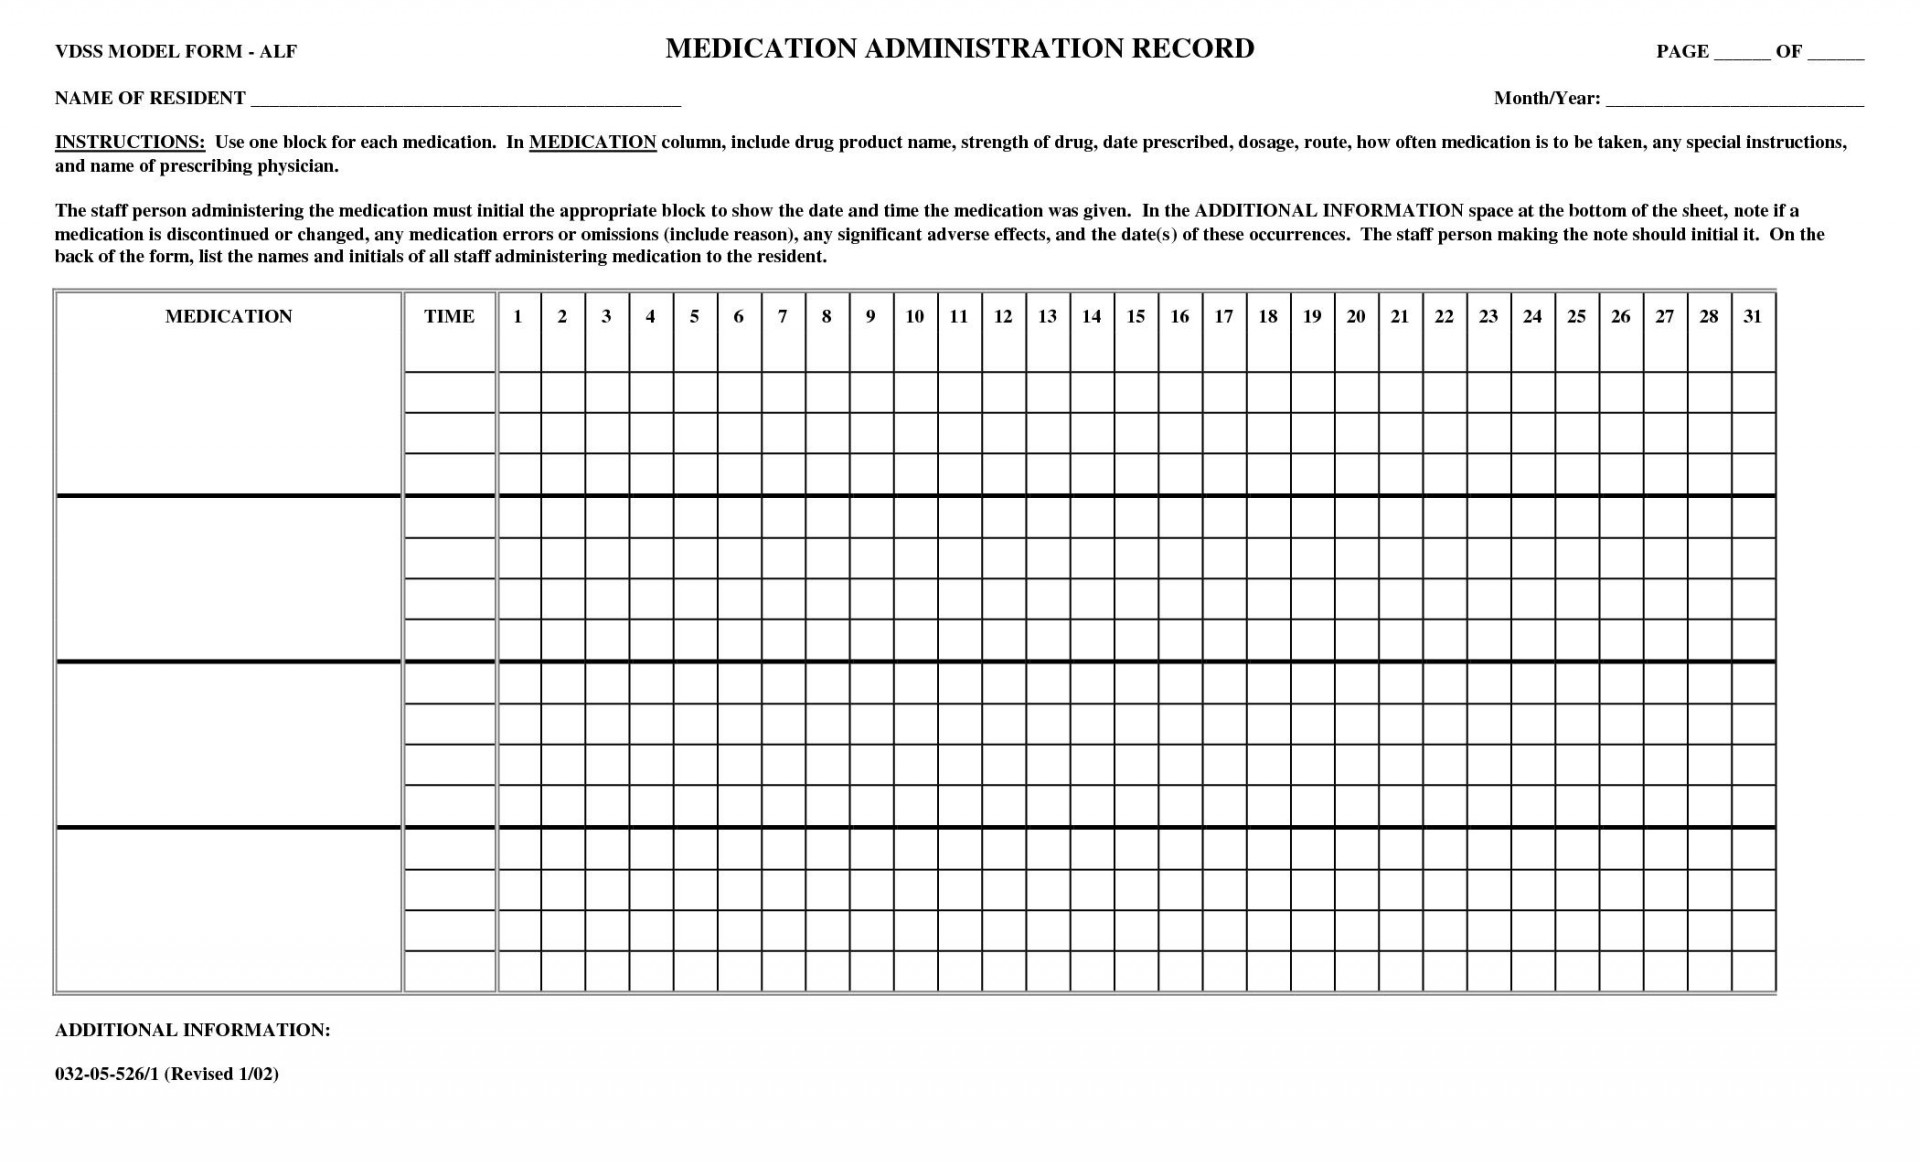 001 Unusual Medication Administration Record Template Pdf Inspiration  Simple Free1920